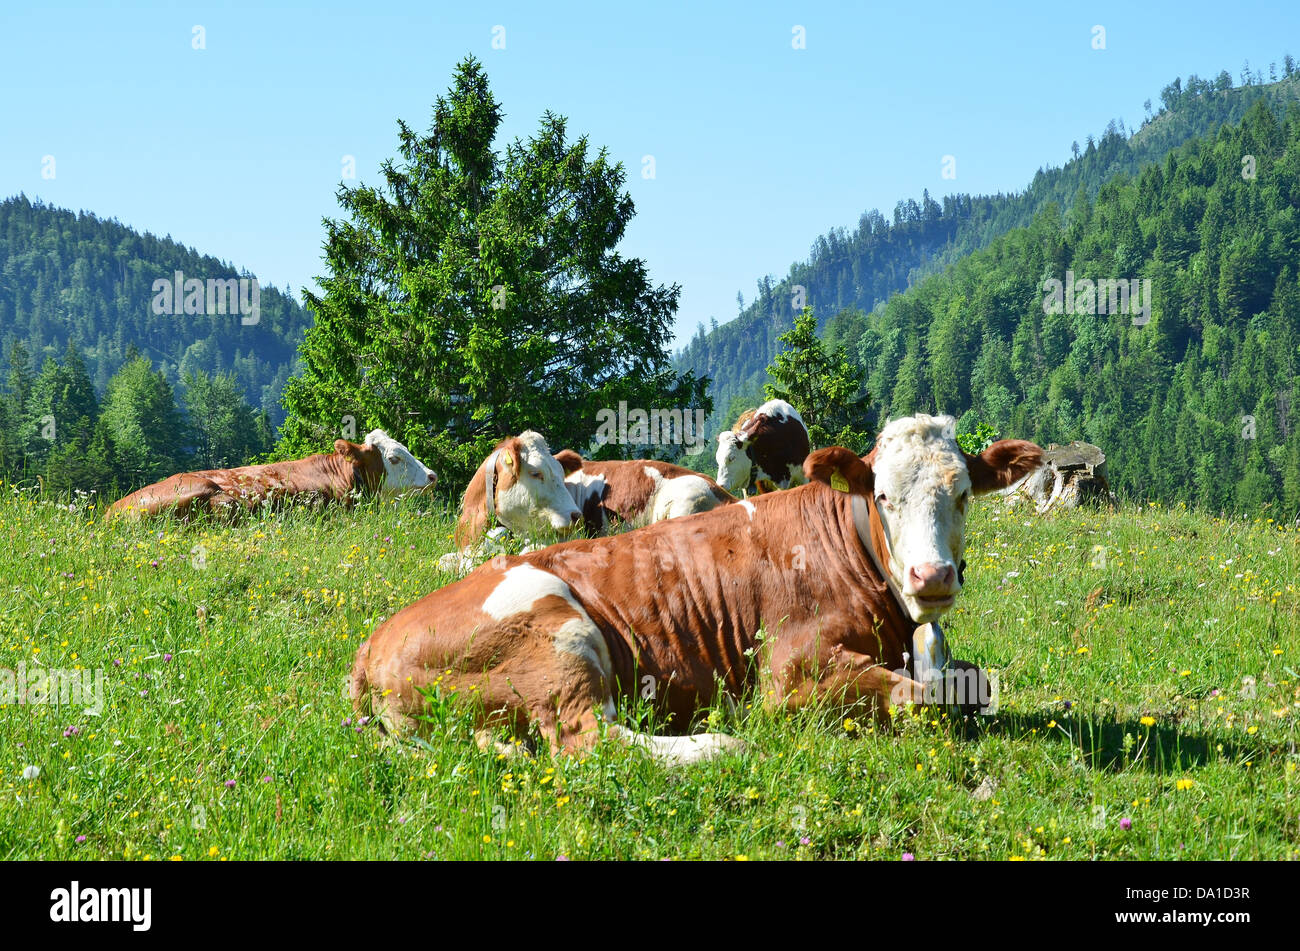 Cows on an alpine pasture in Bavaria Germany Stock Photo